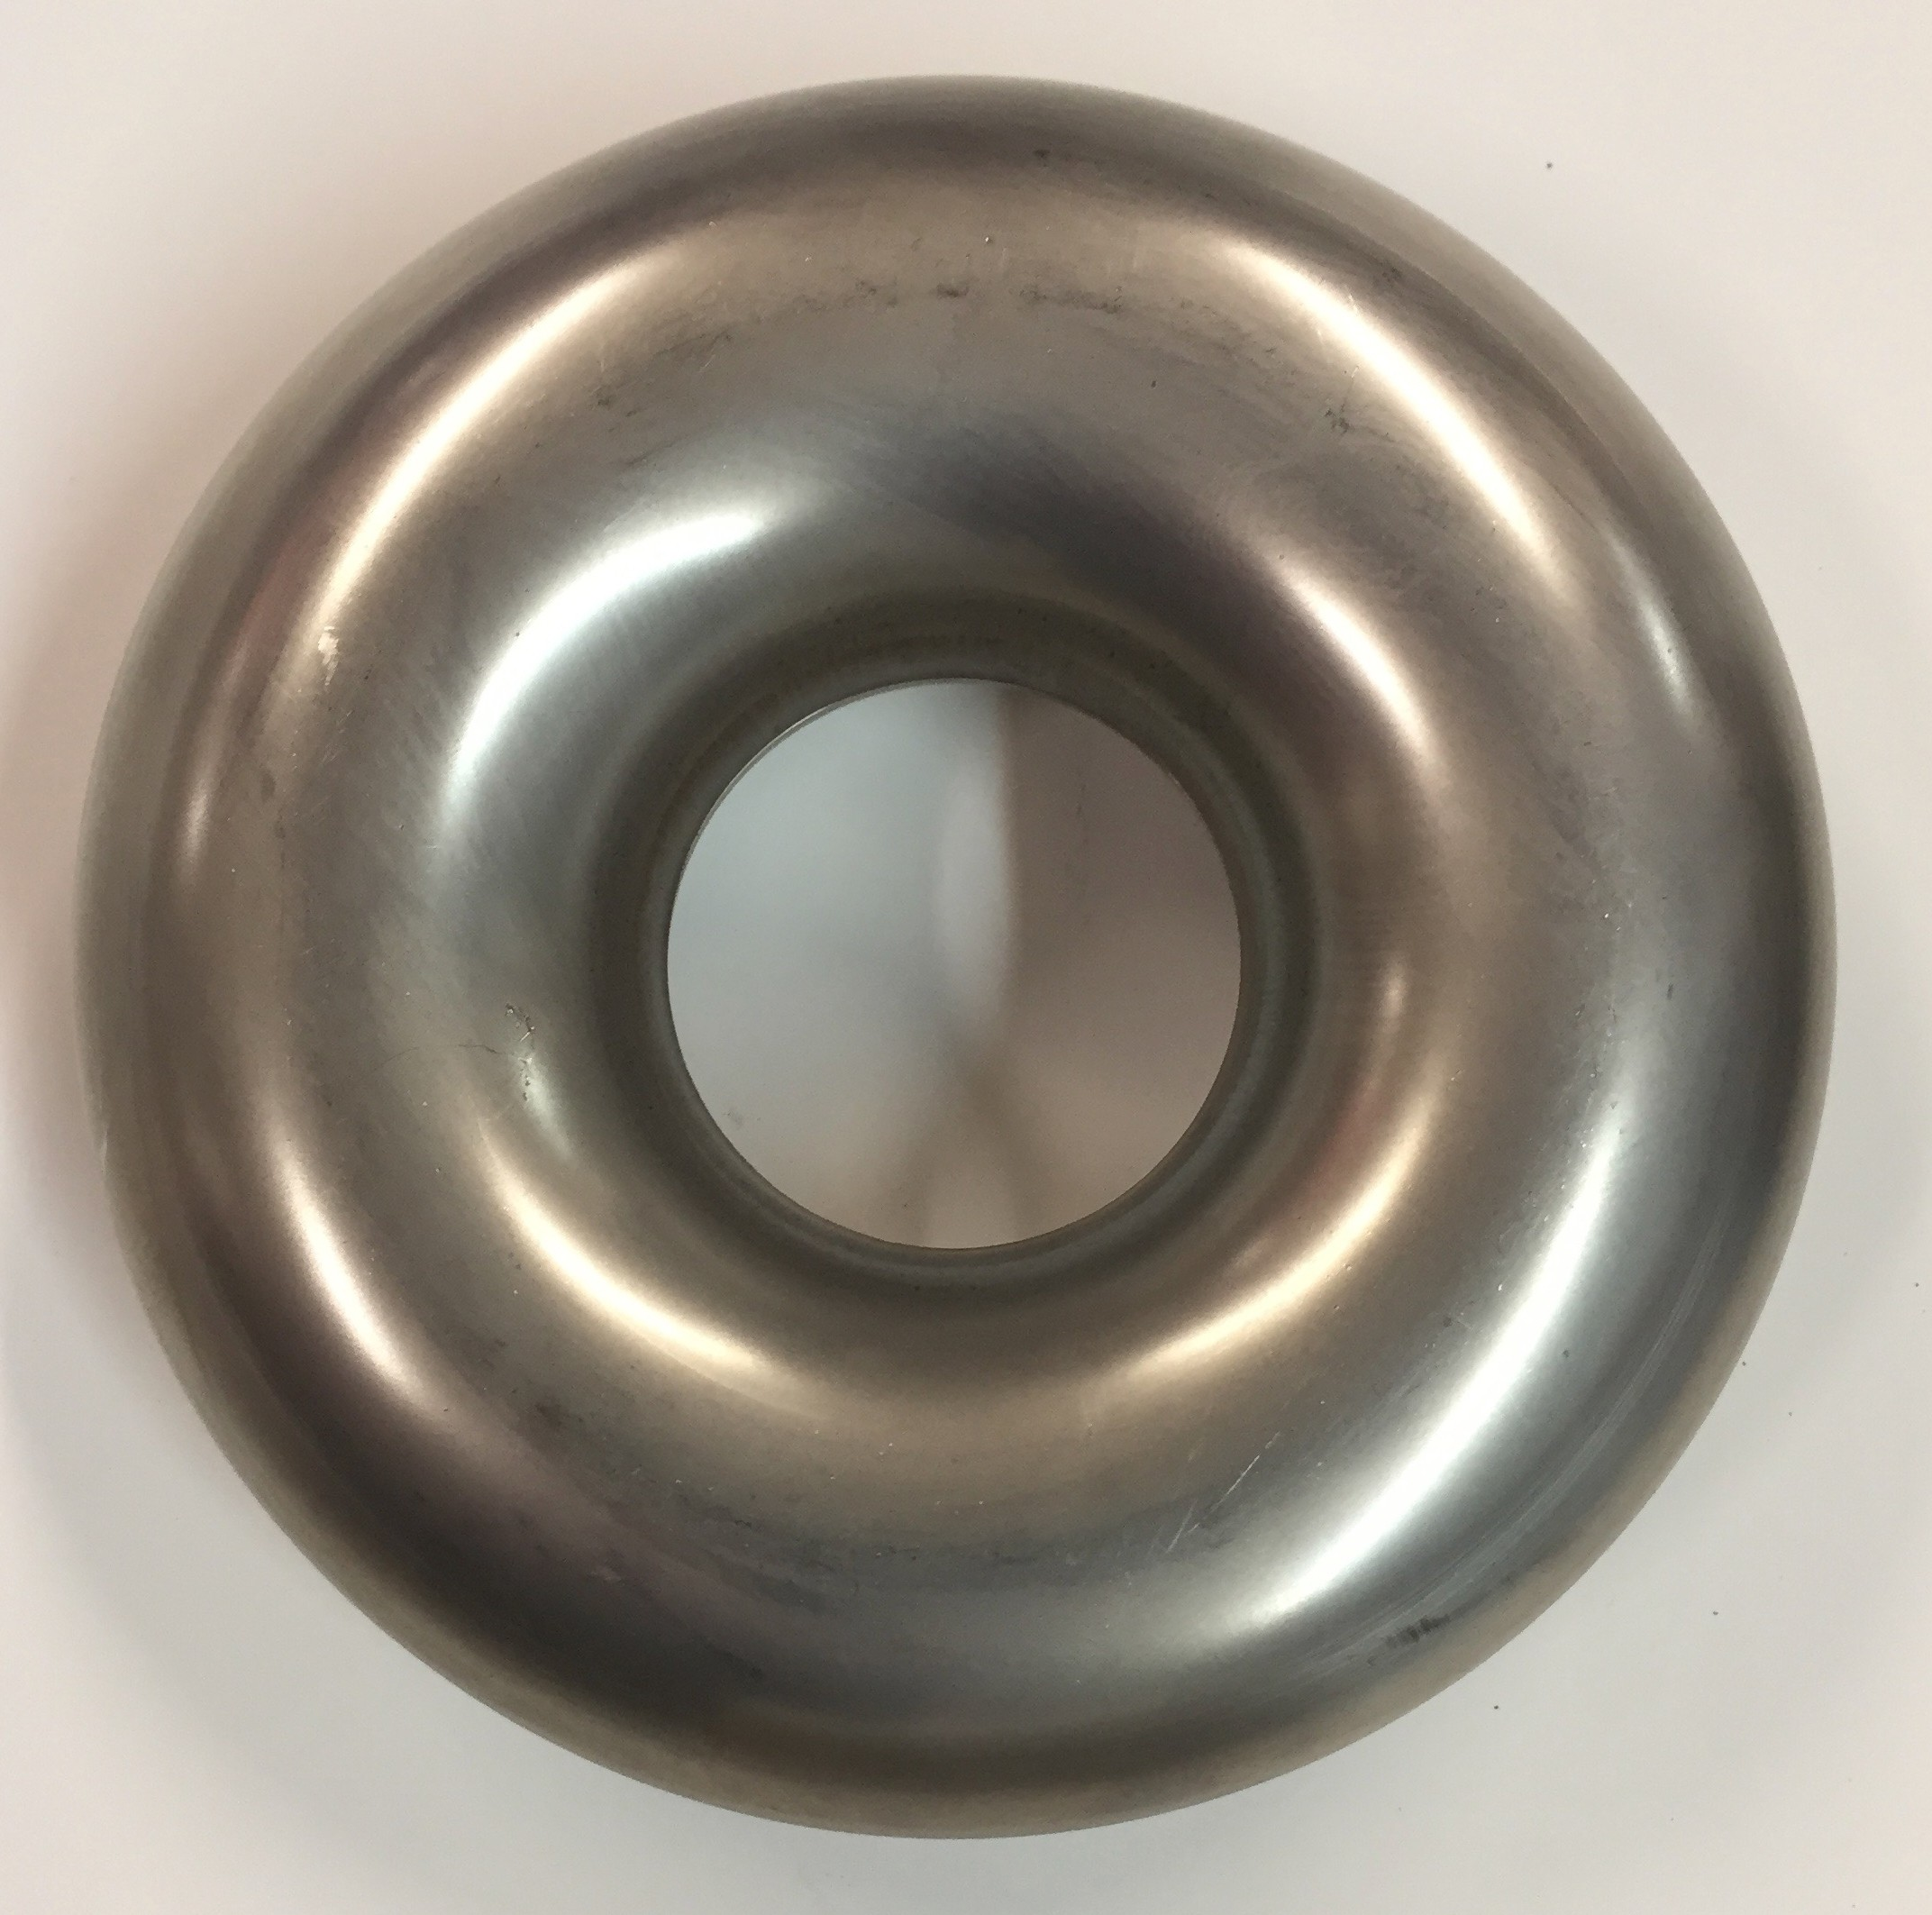 DEEZ Performance Stainless Steel Donut 2 3/8""